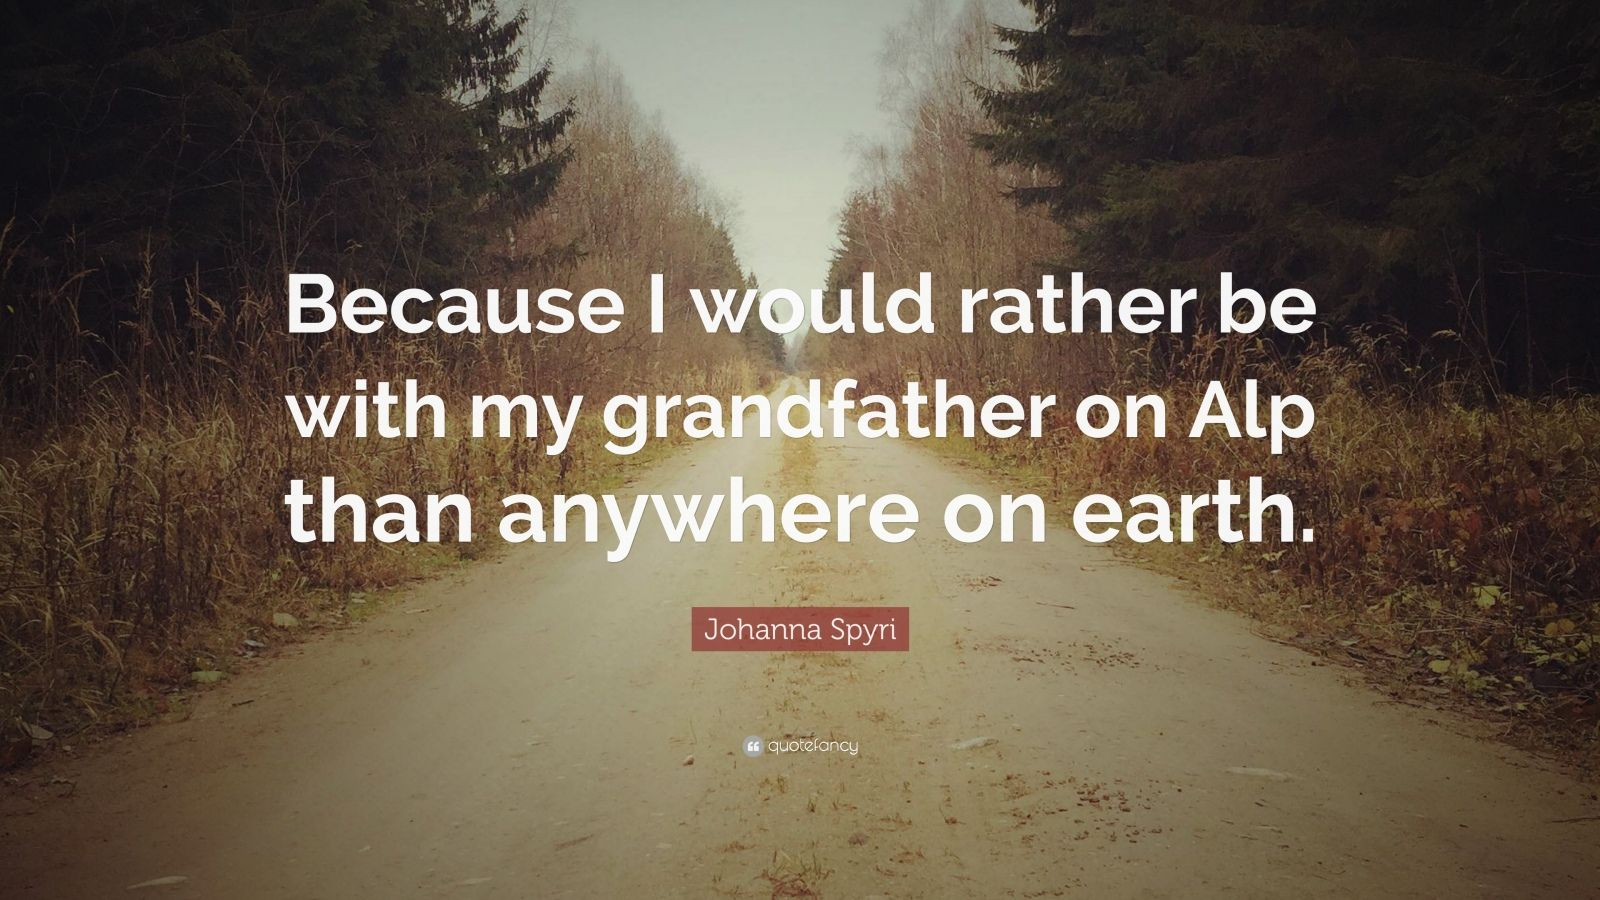 """Johanna Spyri Quote: """"Because I would rather be with my grandfather on Alp than anywhere on earth."""""""